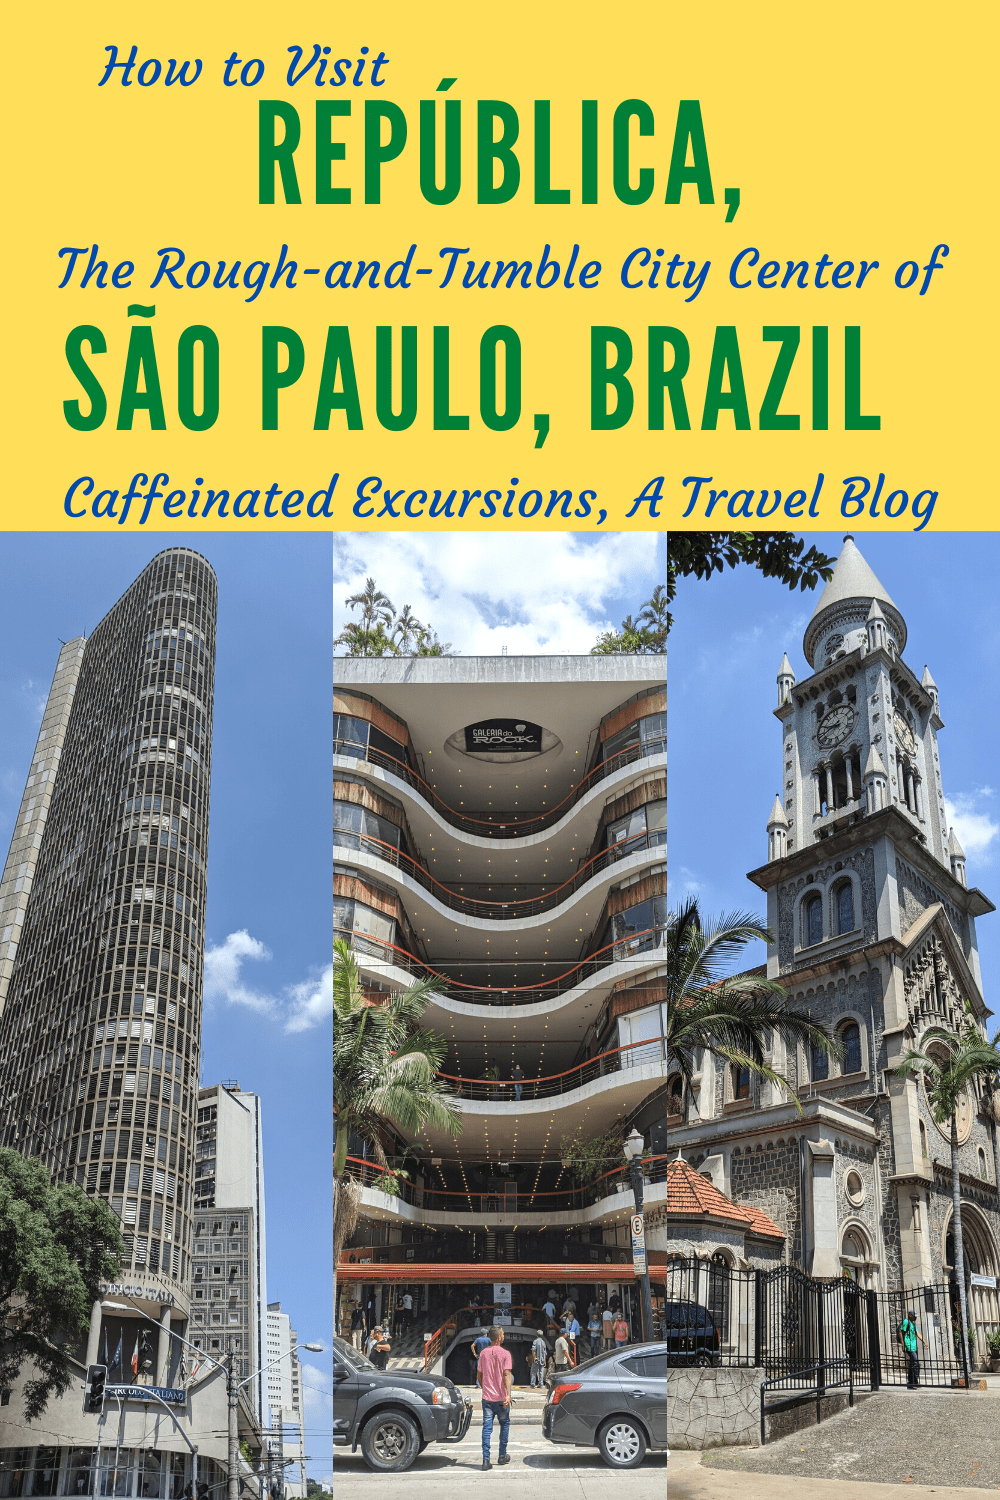 República, the center of São Paulo, is one of the city's most interesting areas. To learn about how to visit its most beautiful sites without running into trouble, check out this post! #saopaulo #saopaulobrazil #saopaulobrasil #sãopaulobrasil #república #repúblicasãopaulo #republicasaopaulo #republicasp #sampa #braziltravelguide #visitbrazil #thingstodoinbrazil #edificiocopan #edifíciocopan #copan #praçadarepública #sãopaulo360 #caffeinatedexcursions #travelblog #travelblogger #southamerica